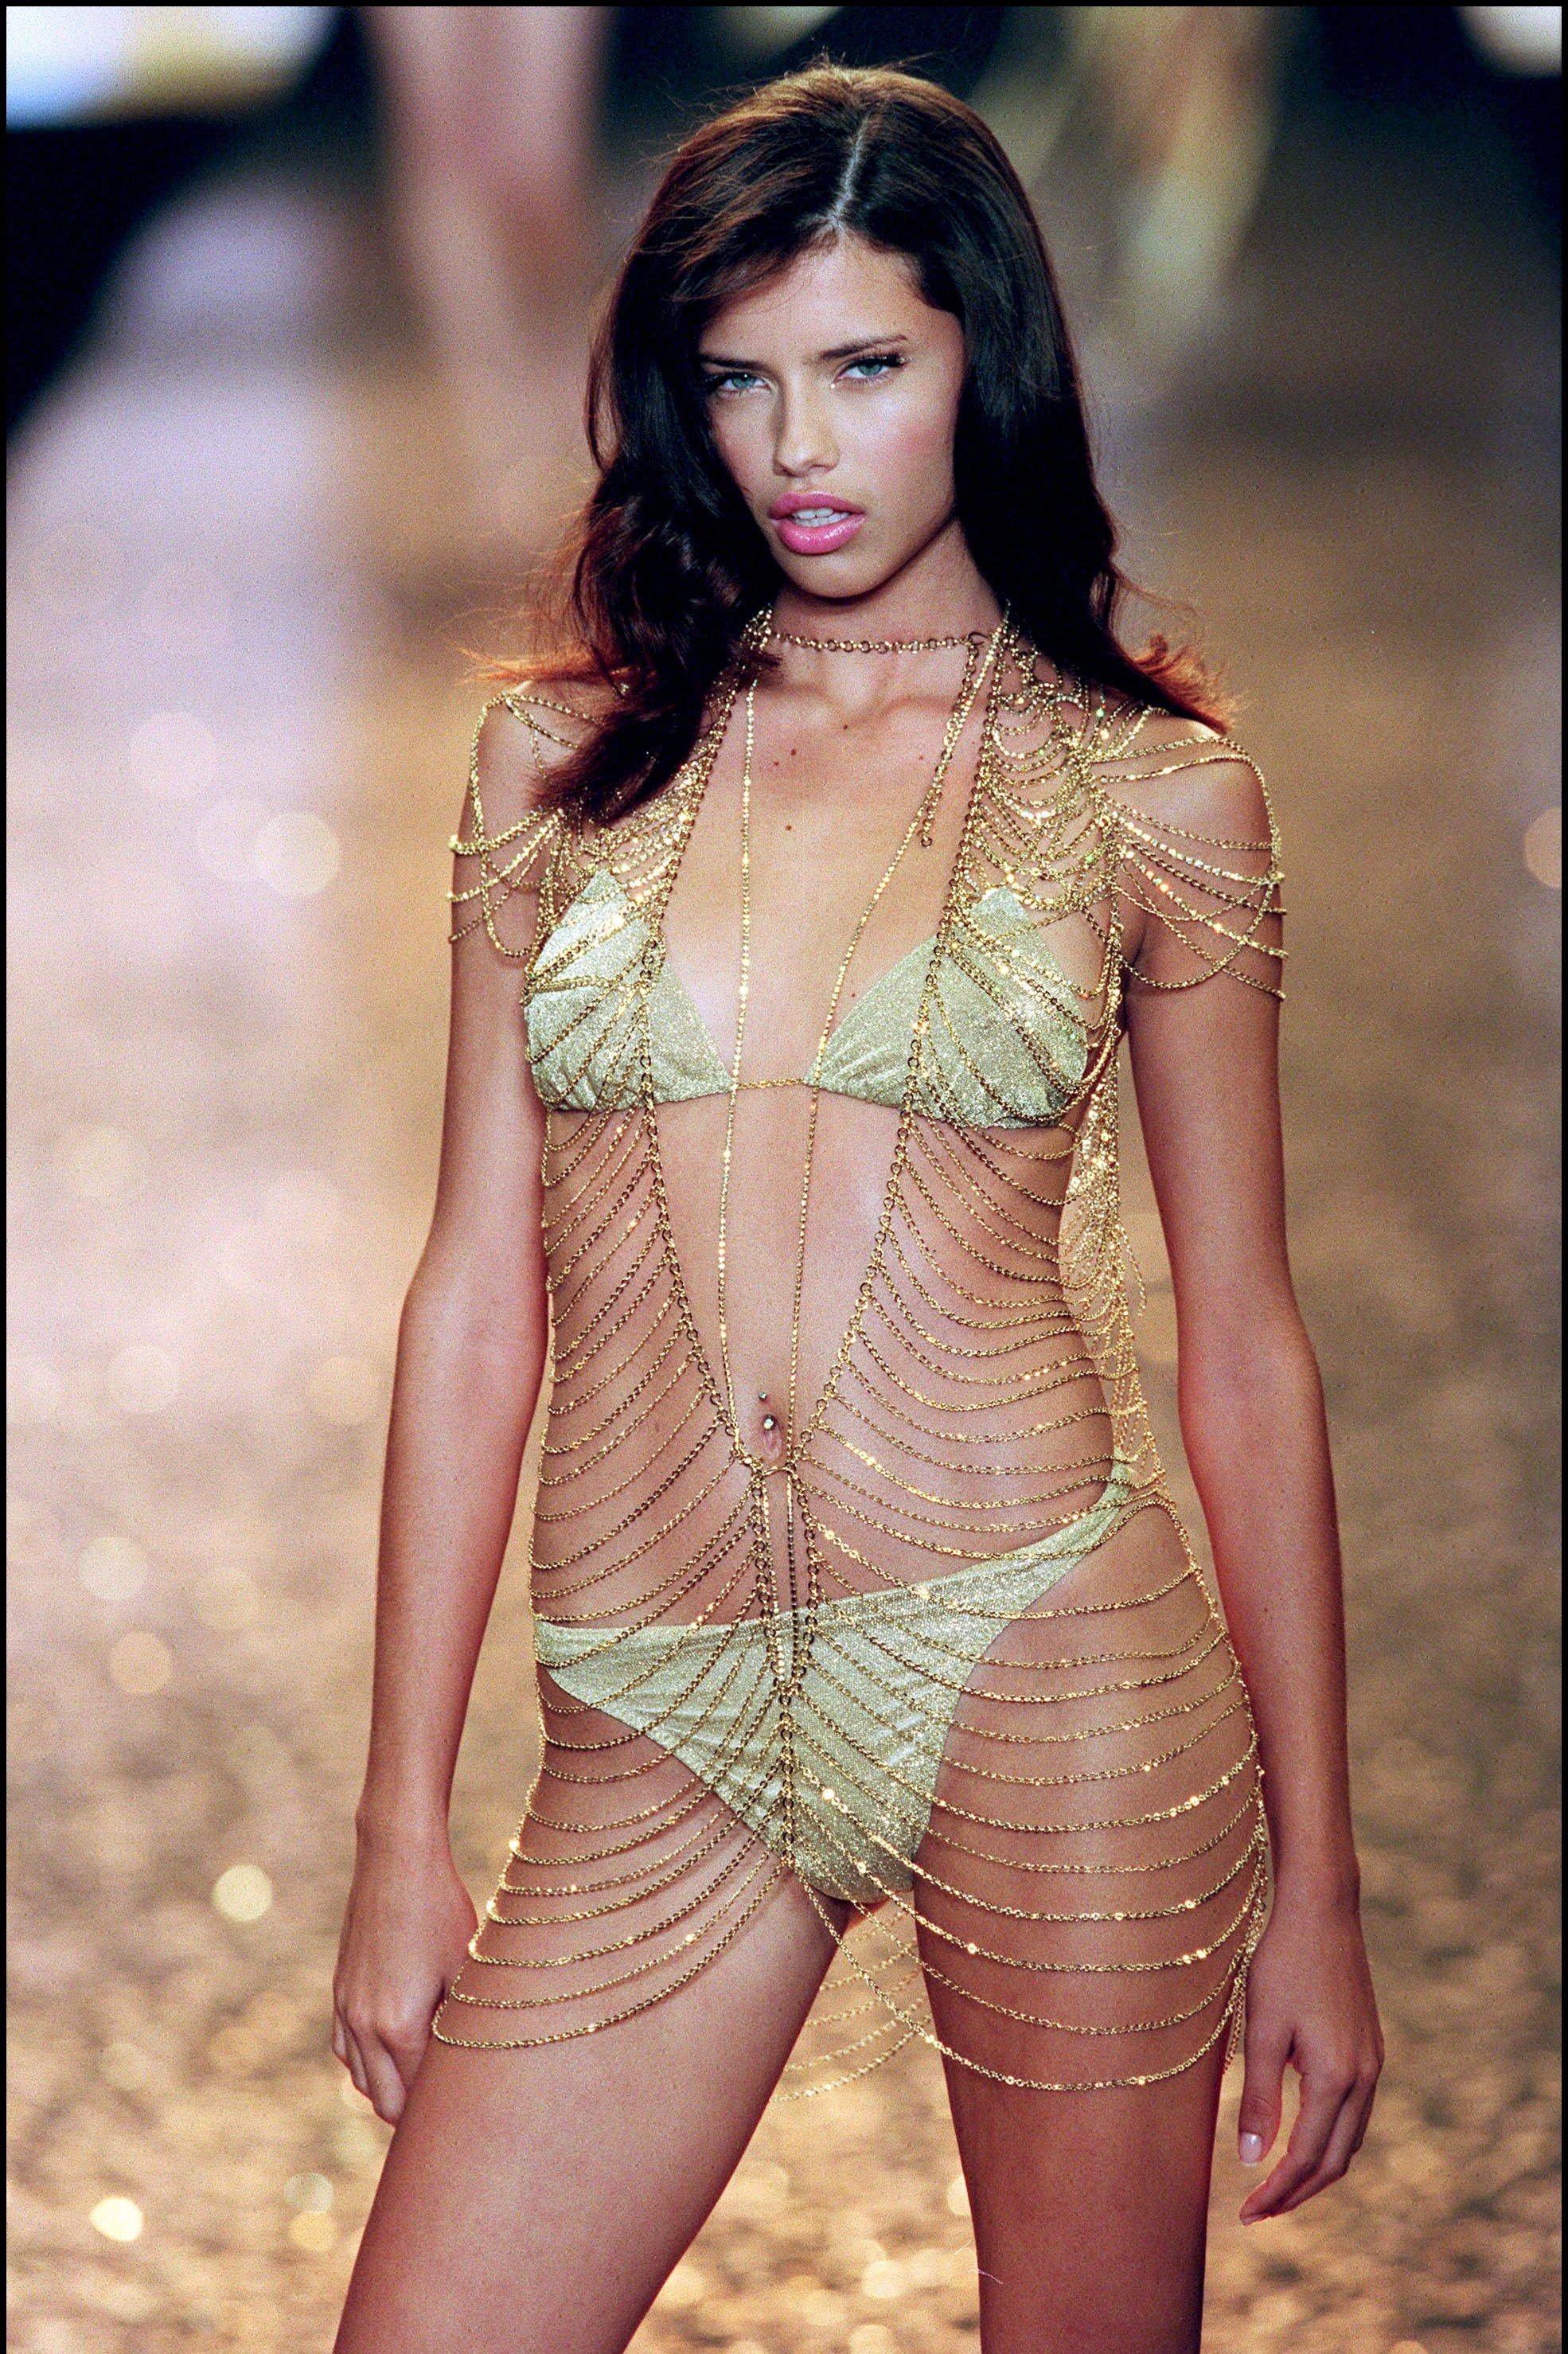 AMFAR charity gala evening : the Victoria's Secret fashion show In Cannes, France On May 18, 2000-